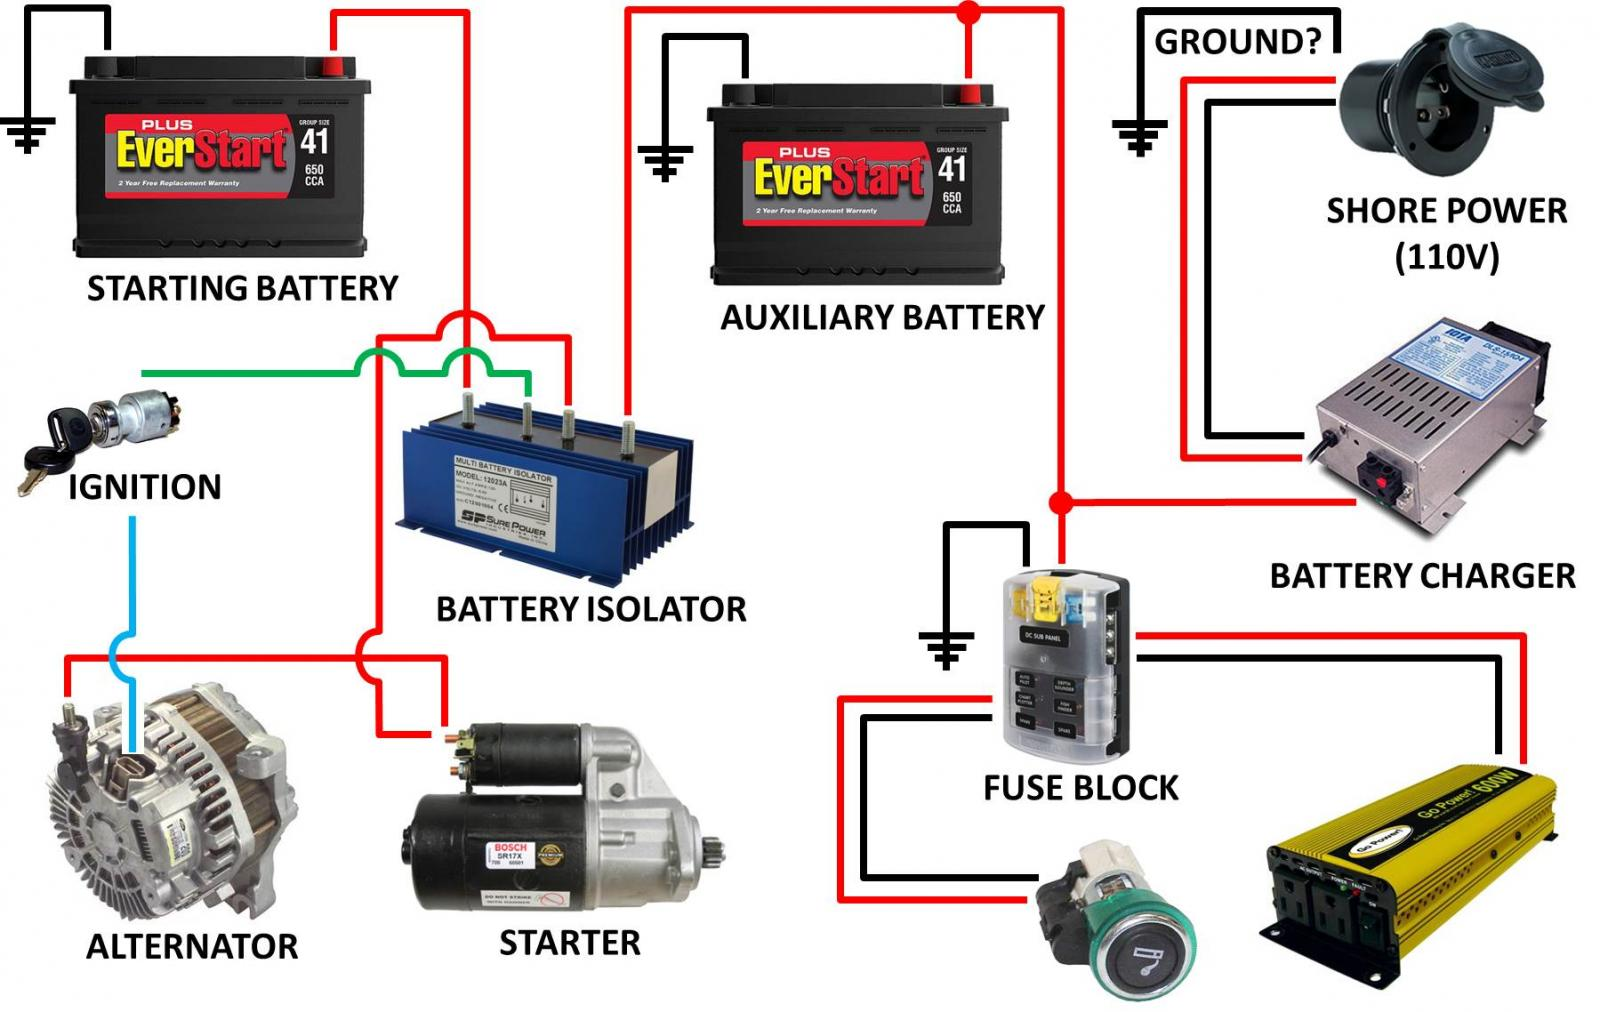 1381156 thesamba com vanagon view topic simplest auxiliary battery vanagon auxiliary battery wiring diagram at gsmx.co